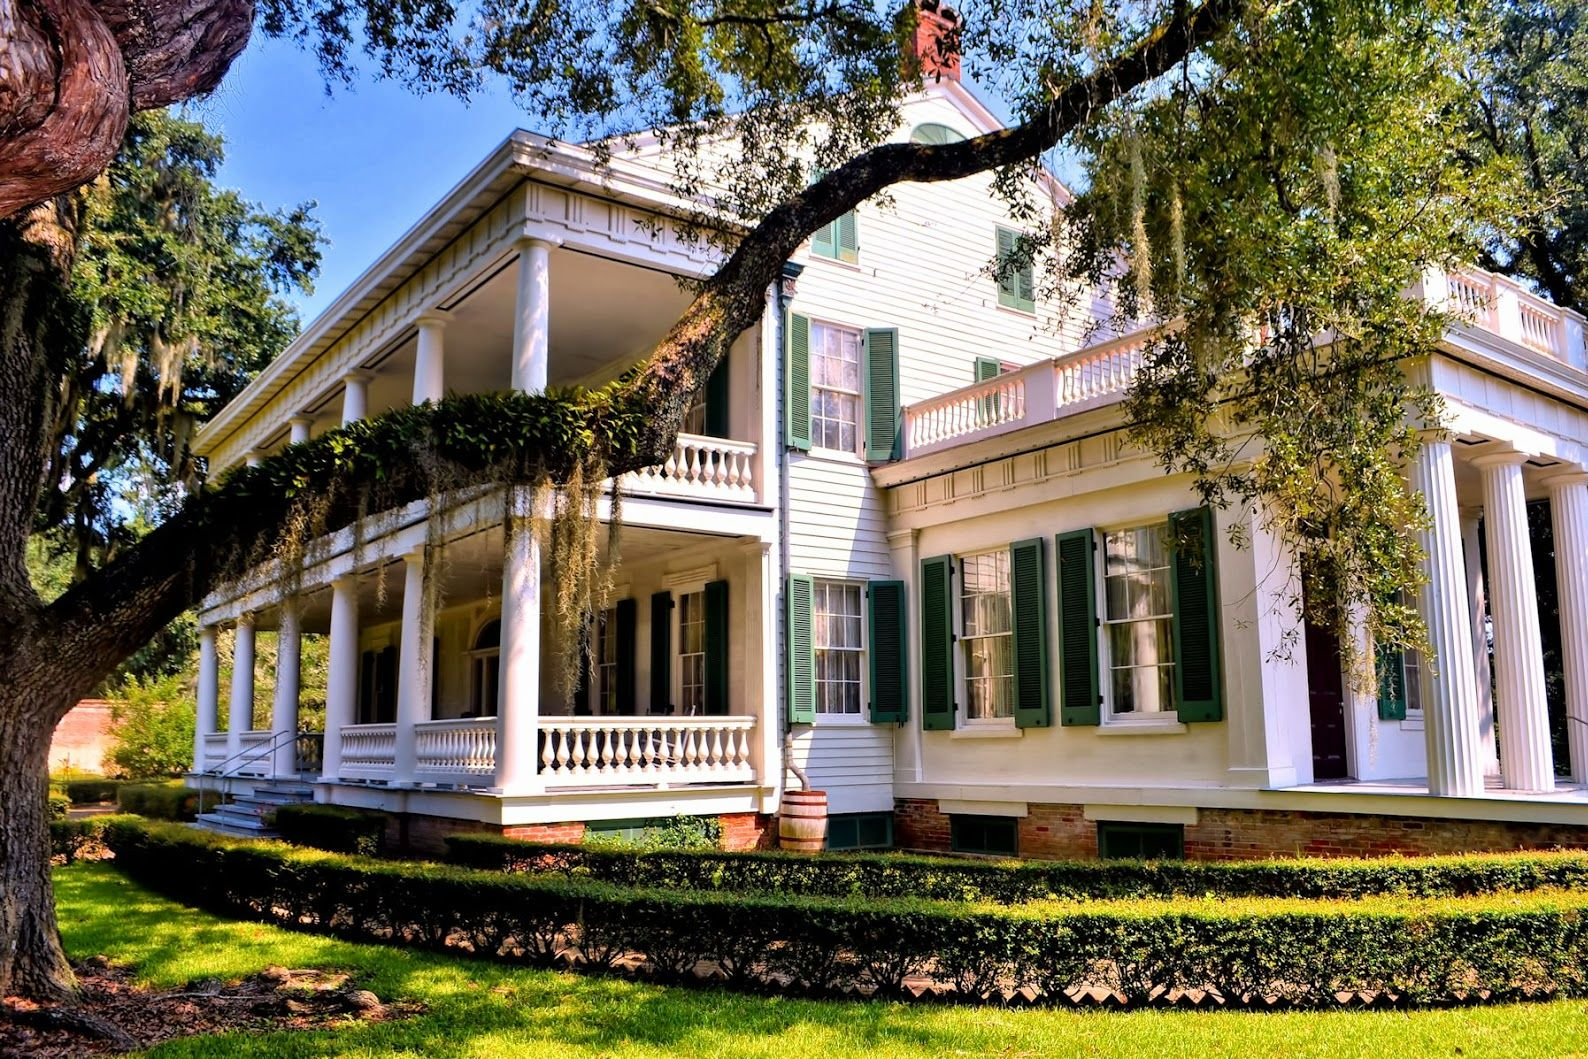 5 Things You Probably Didn't Know About St. Francisville, Louisiana